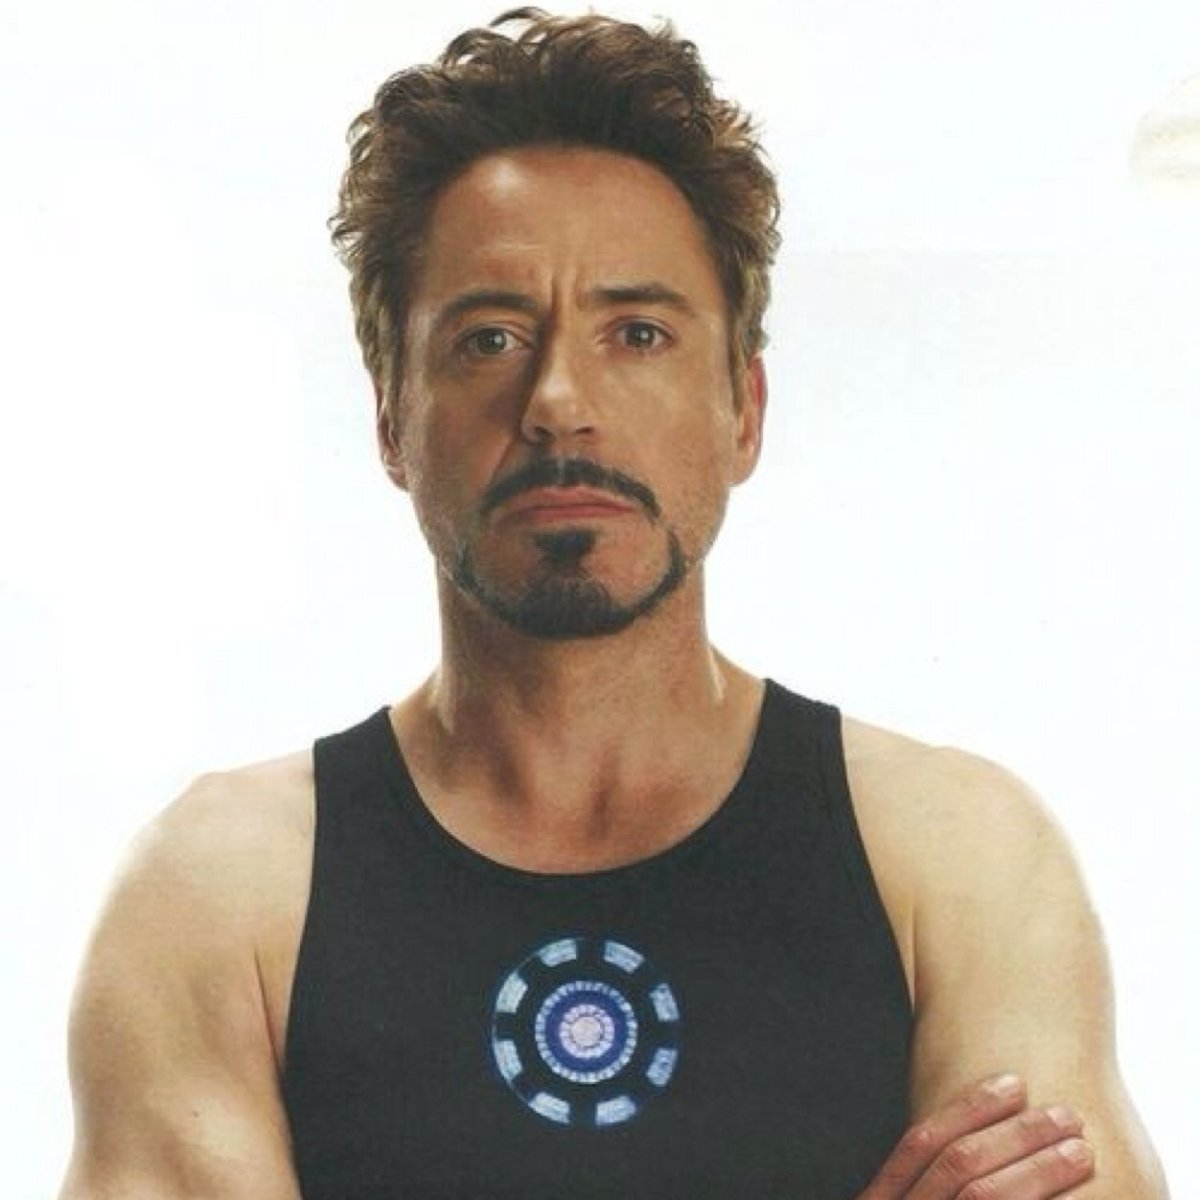 tony-stark-case-study-and-psychological-assessment